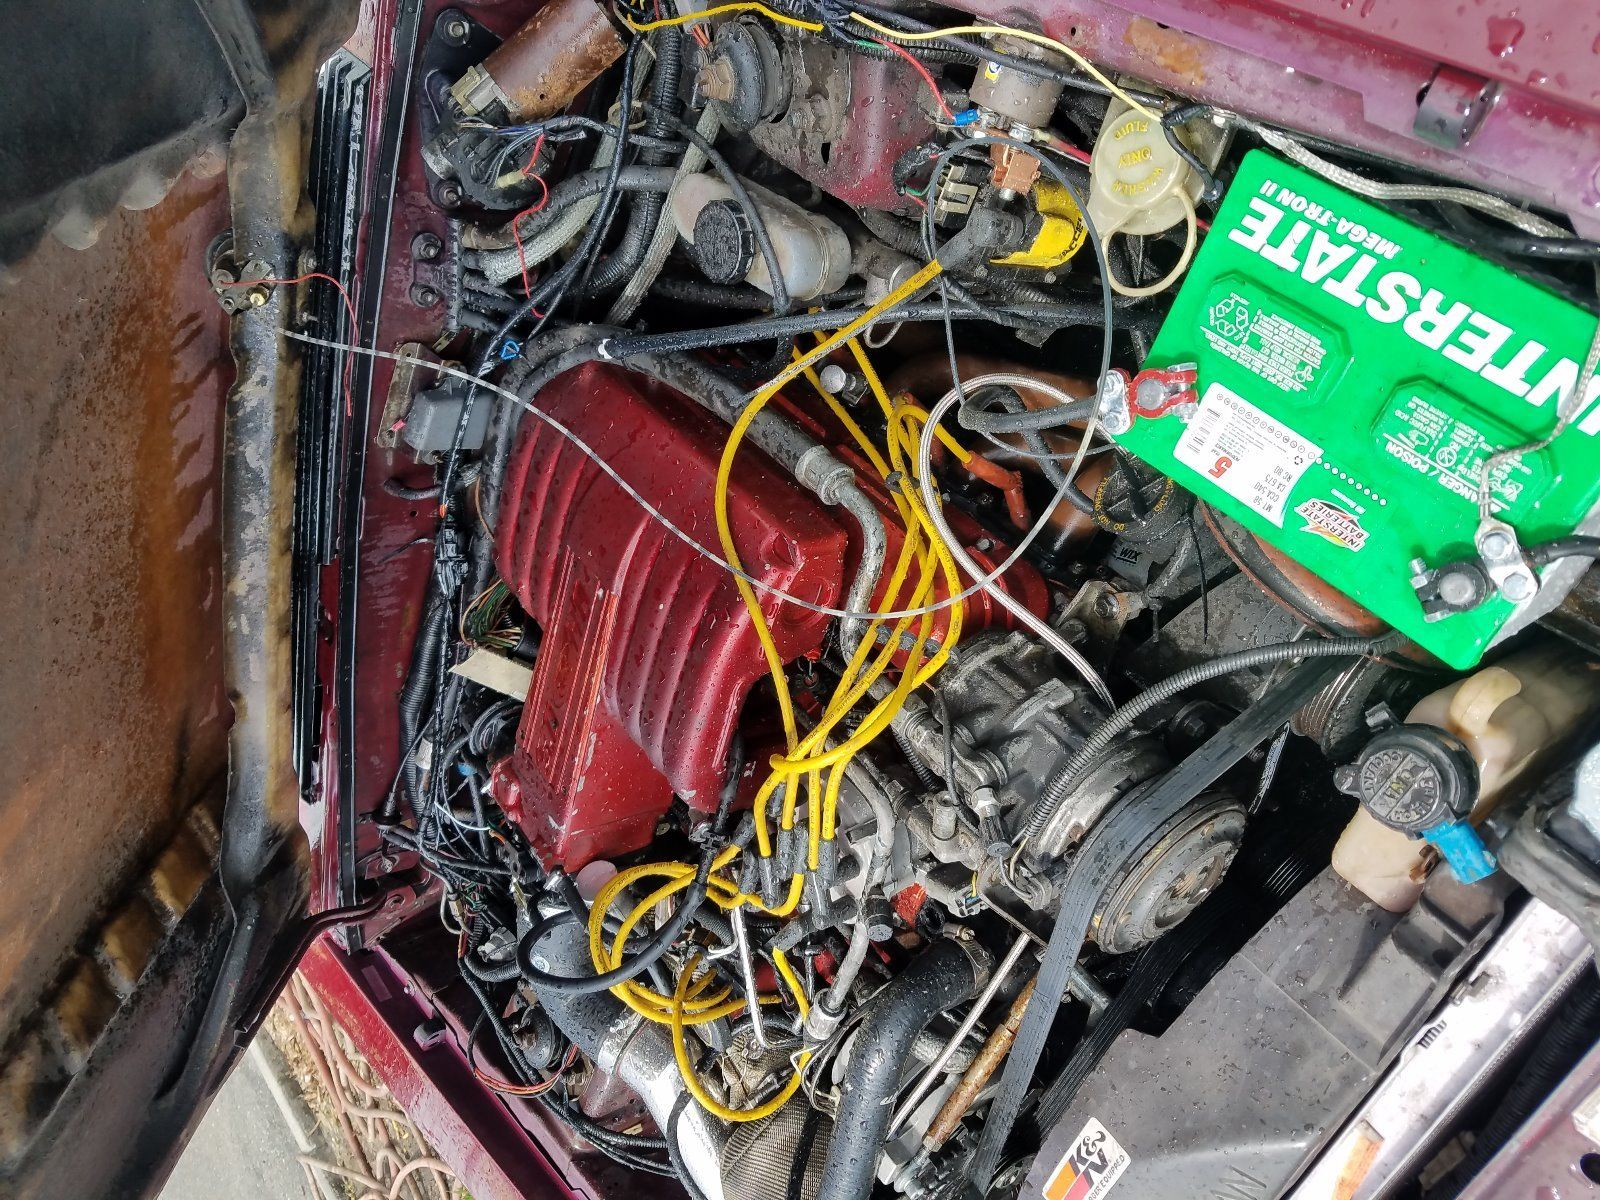 Great 1987 Ford Mustang Gt 50 Big Turbo Lots Of Engine Wiring Item Specifics